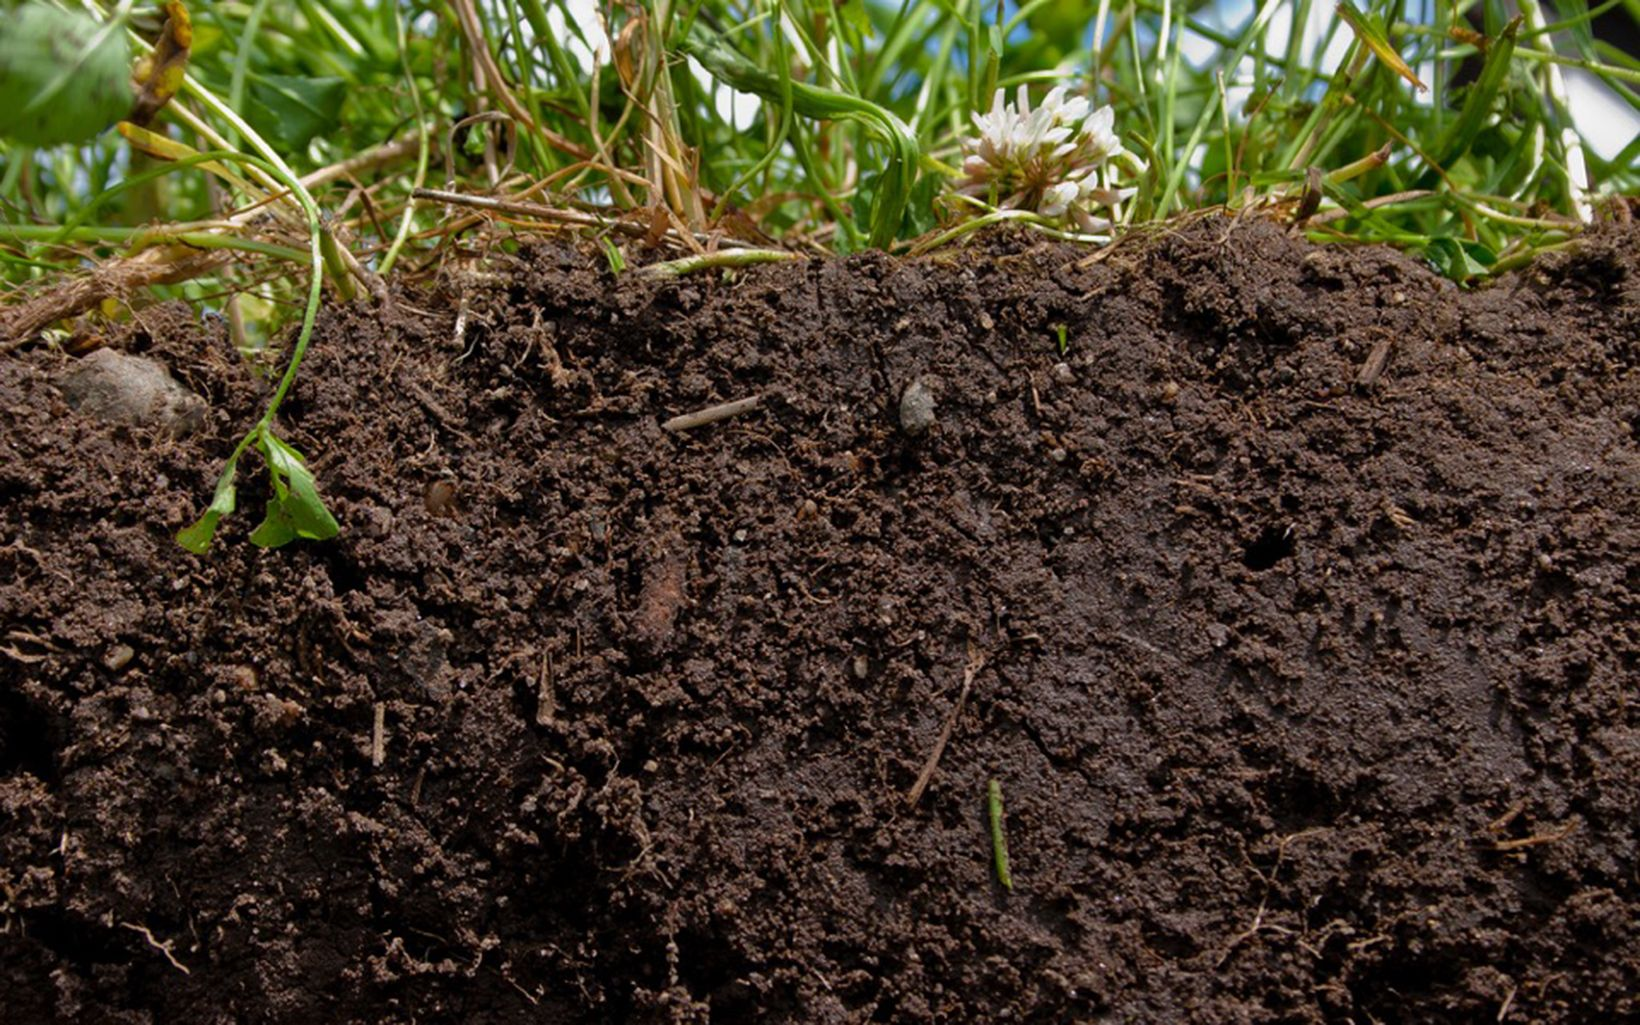 A cross-section of dark brown soil with plants growing at the top.